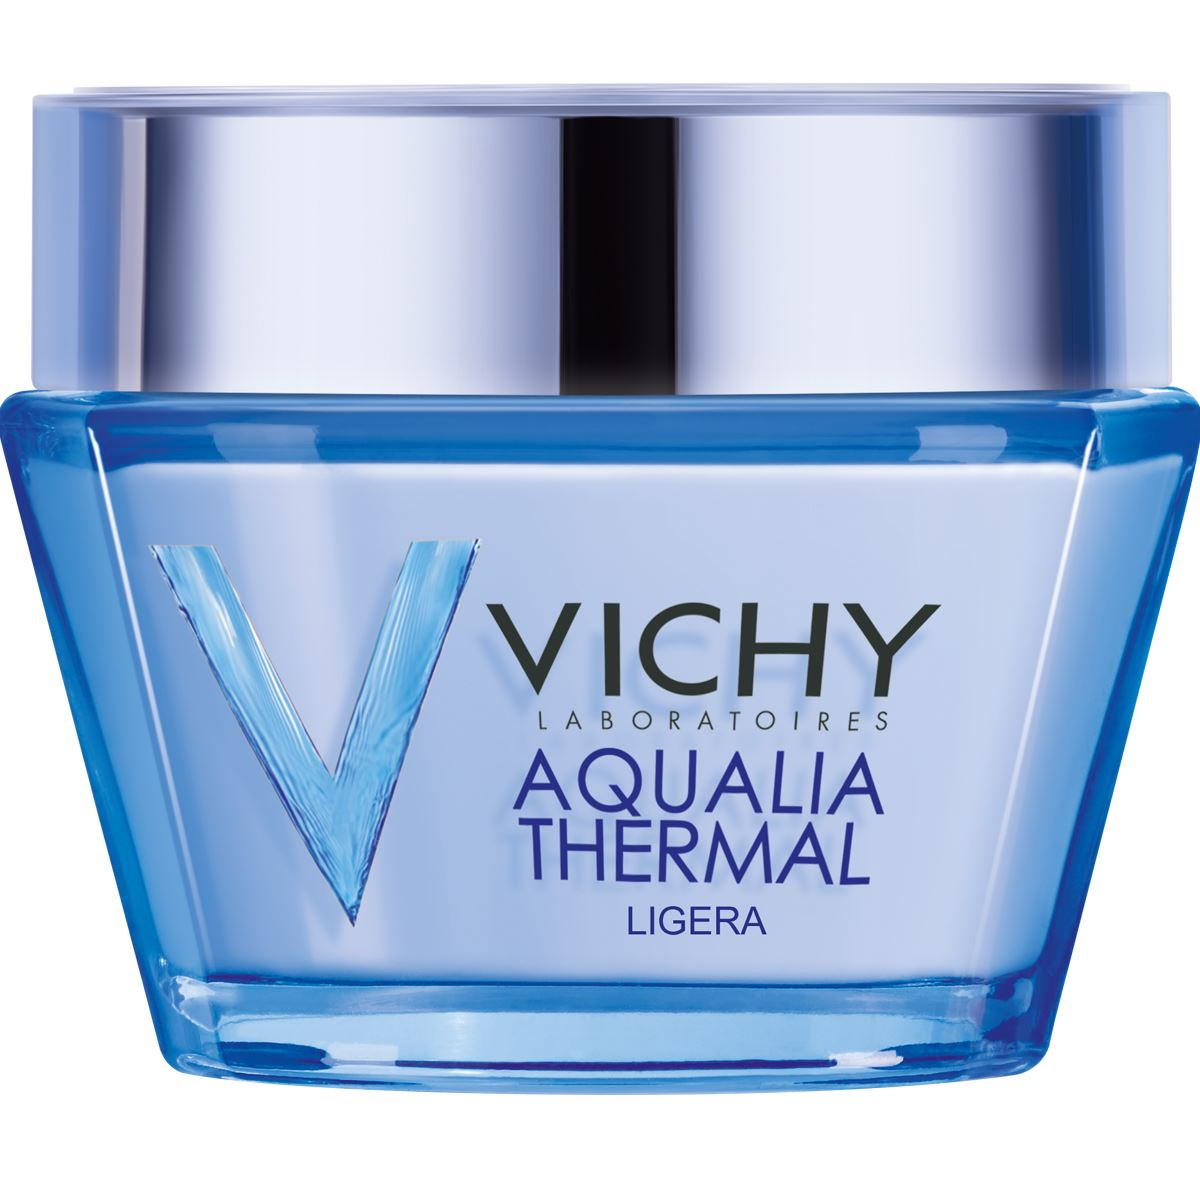 Vichy aqualia legere 50 ml  - Sanborns